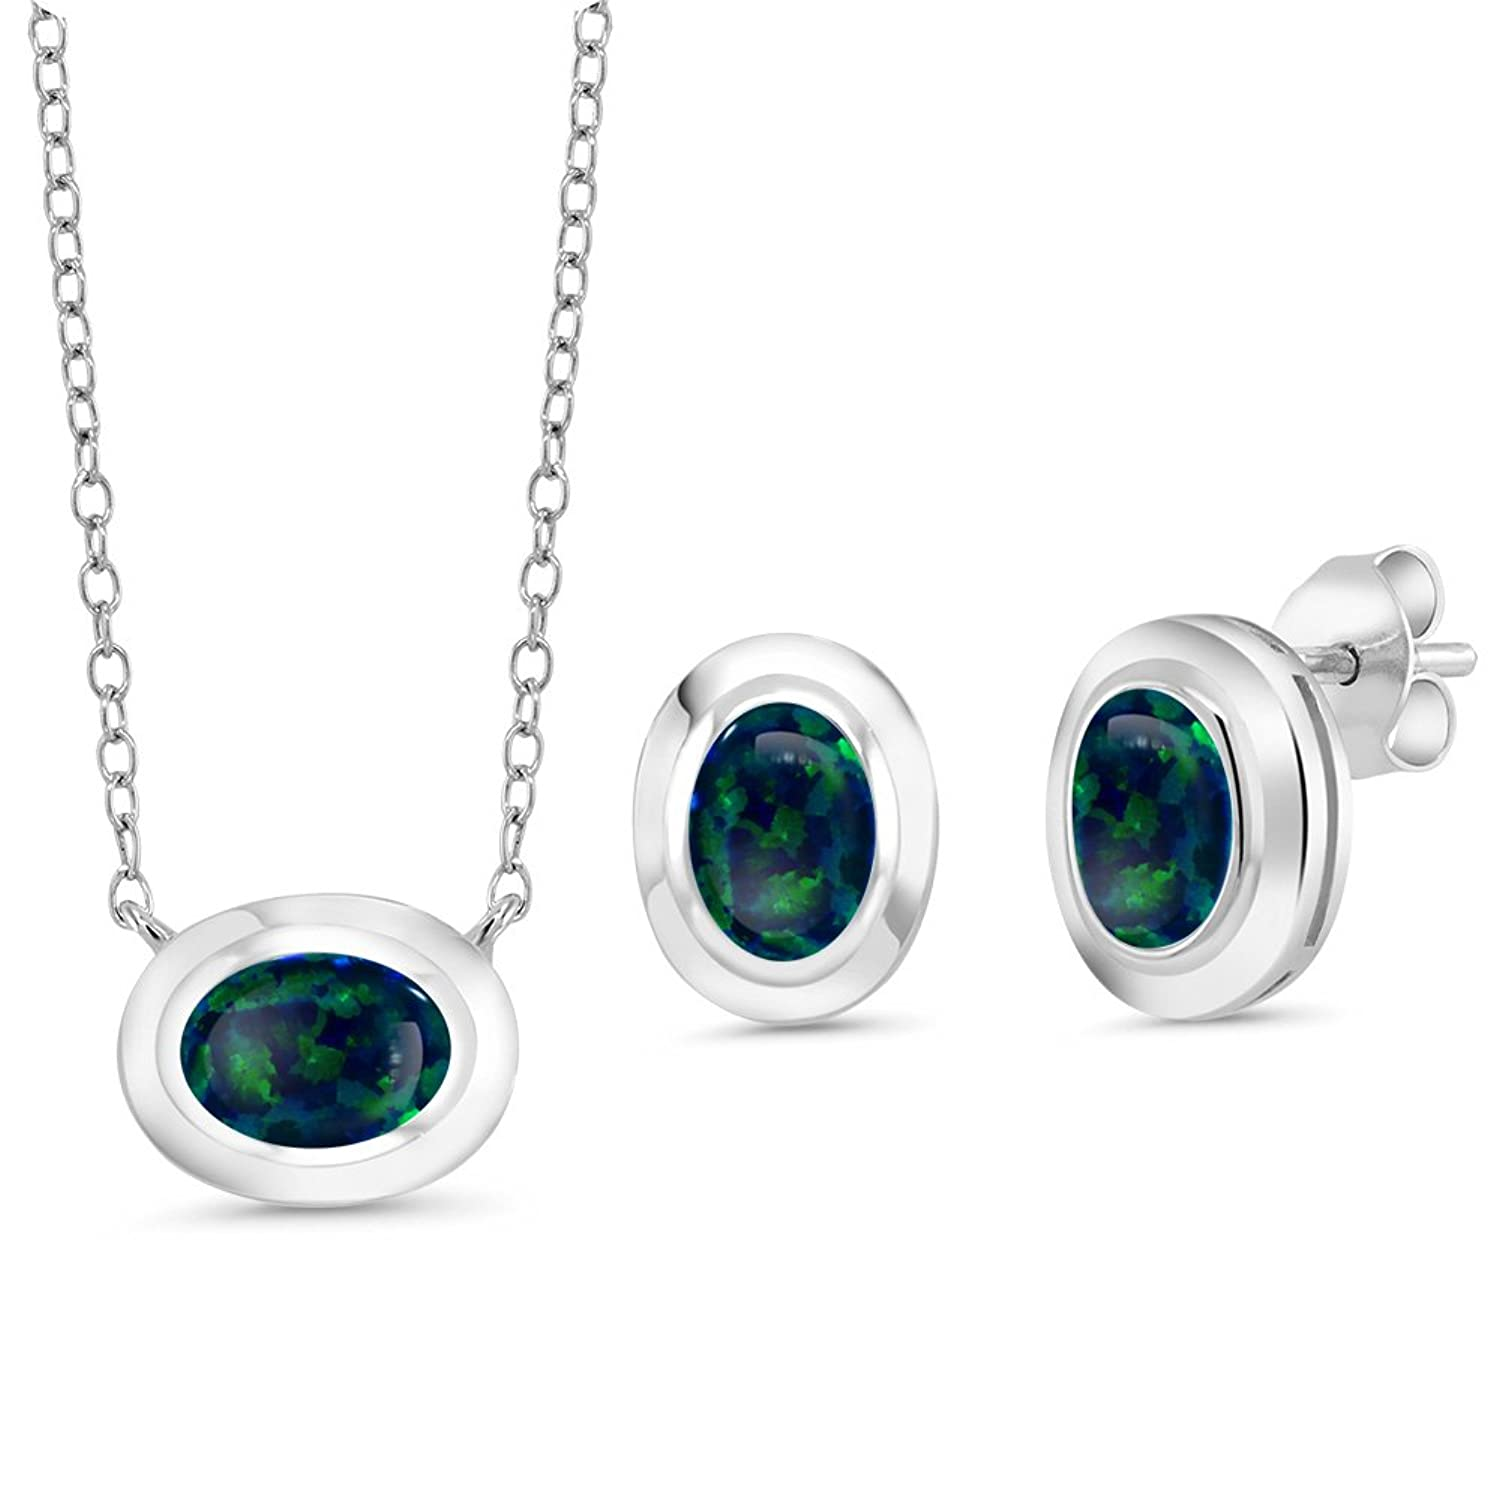 1.89 Ct Oval Cabochon Green Simulated Opal 925 Silver Pendant Earrings Set